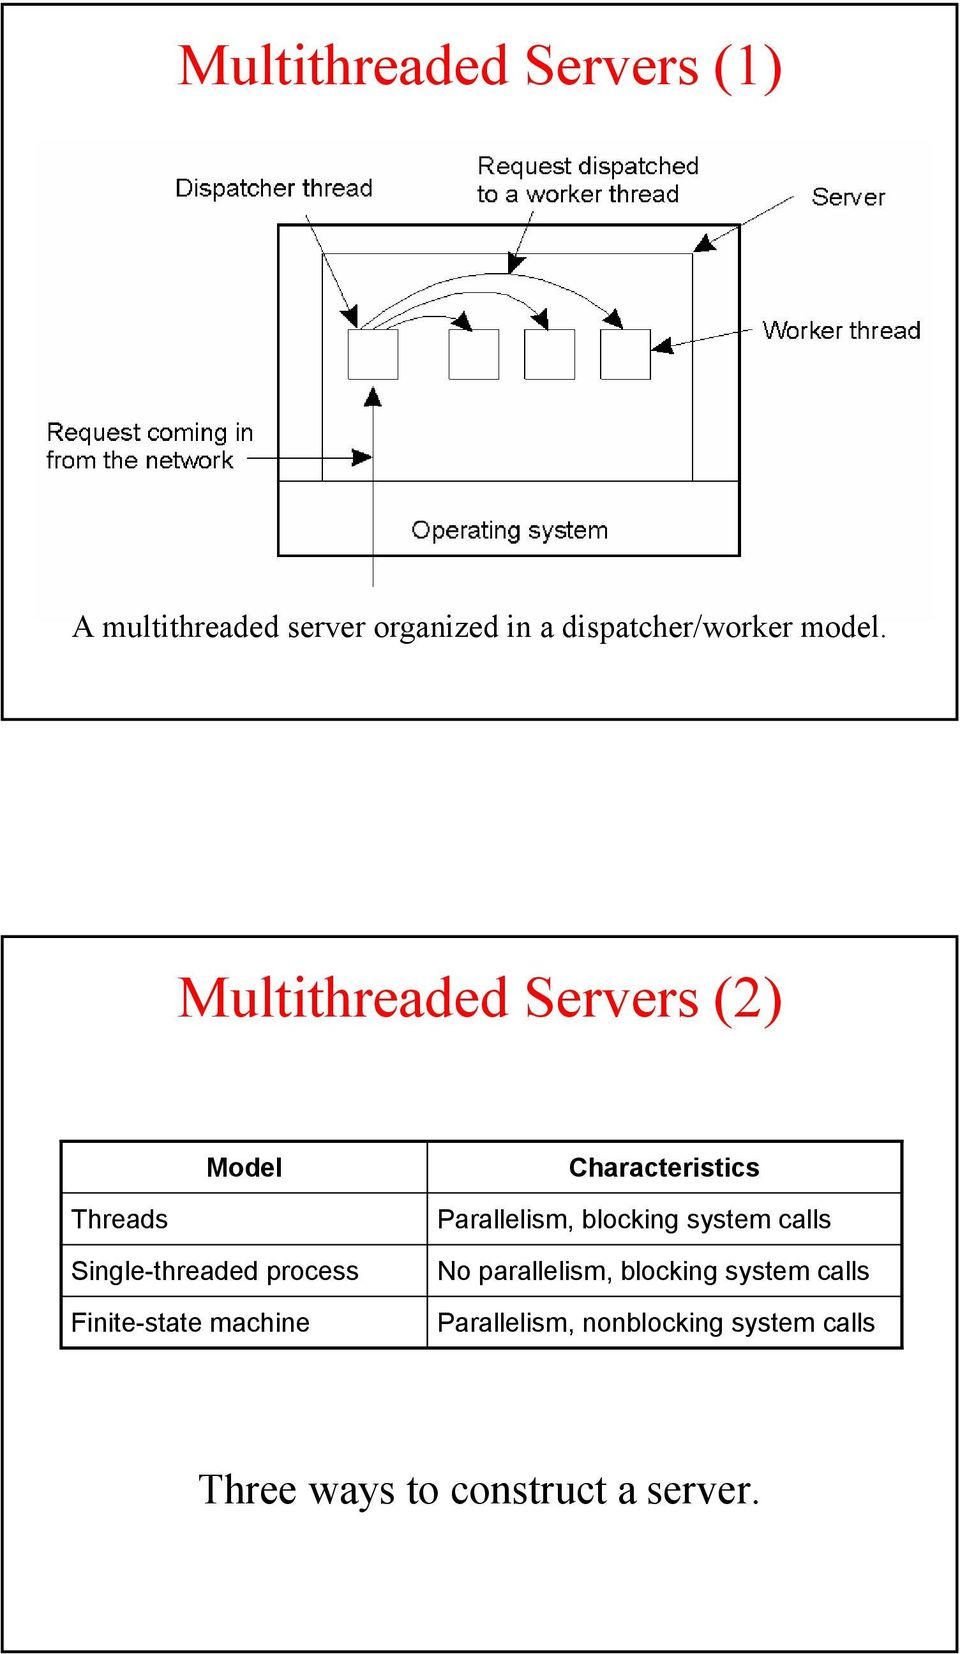 Multithreaded Servers (2) Model Characteristics Threads Single-threaded process